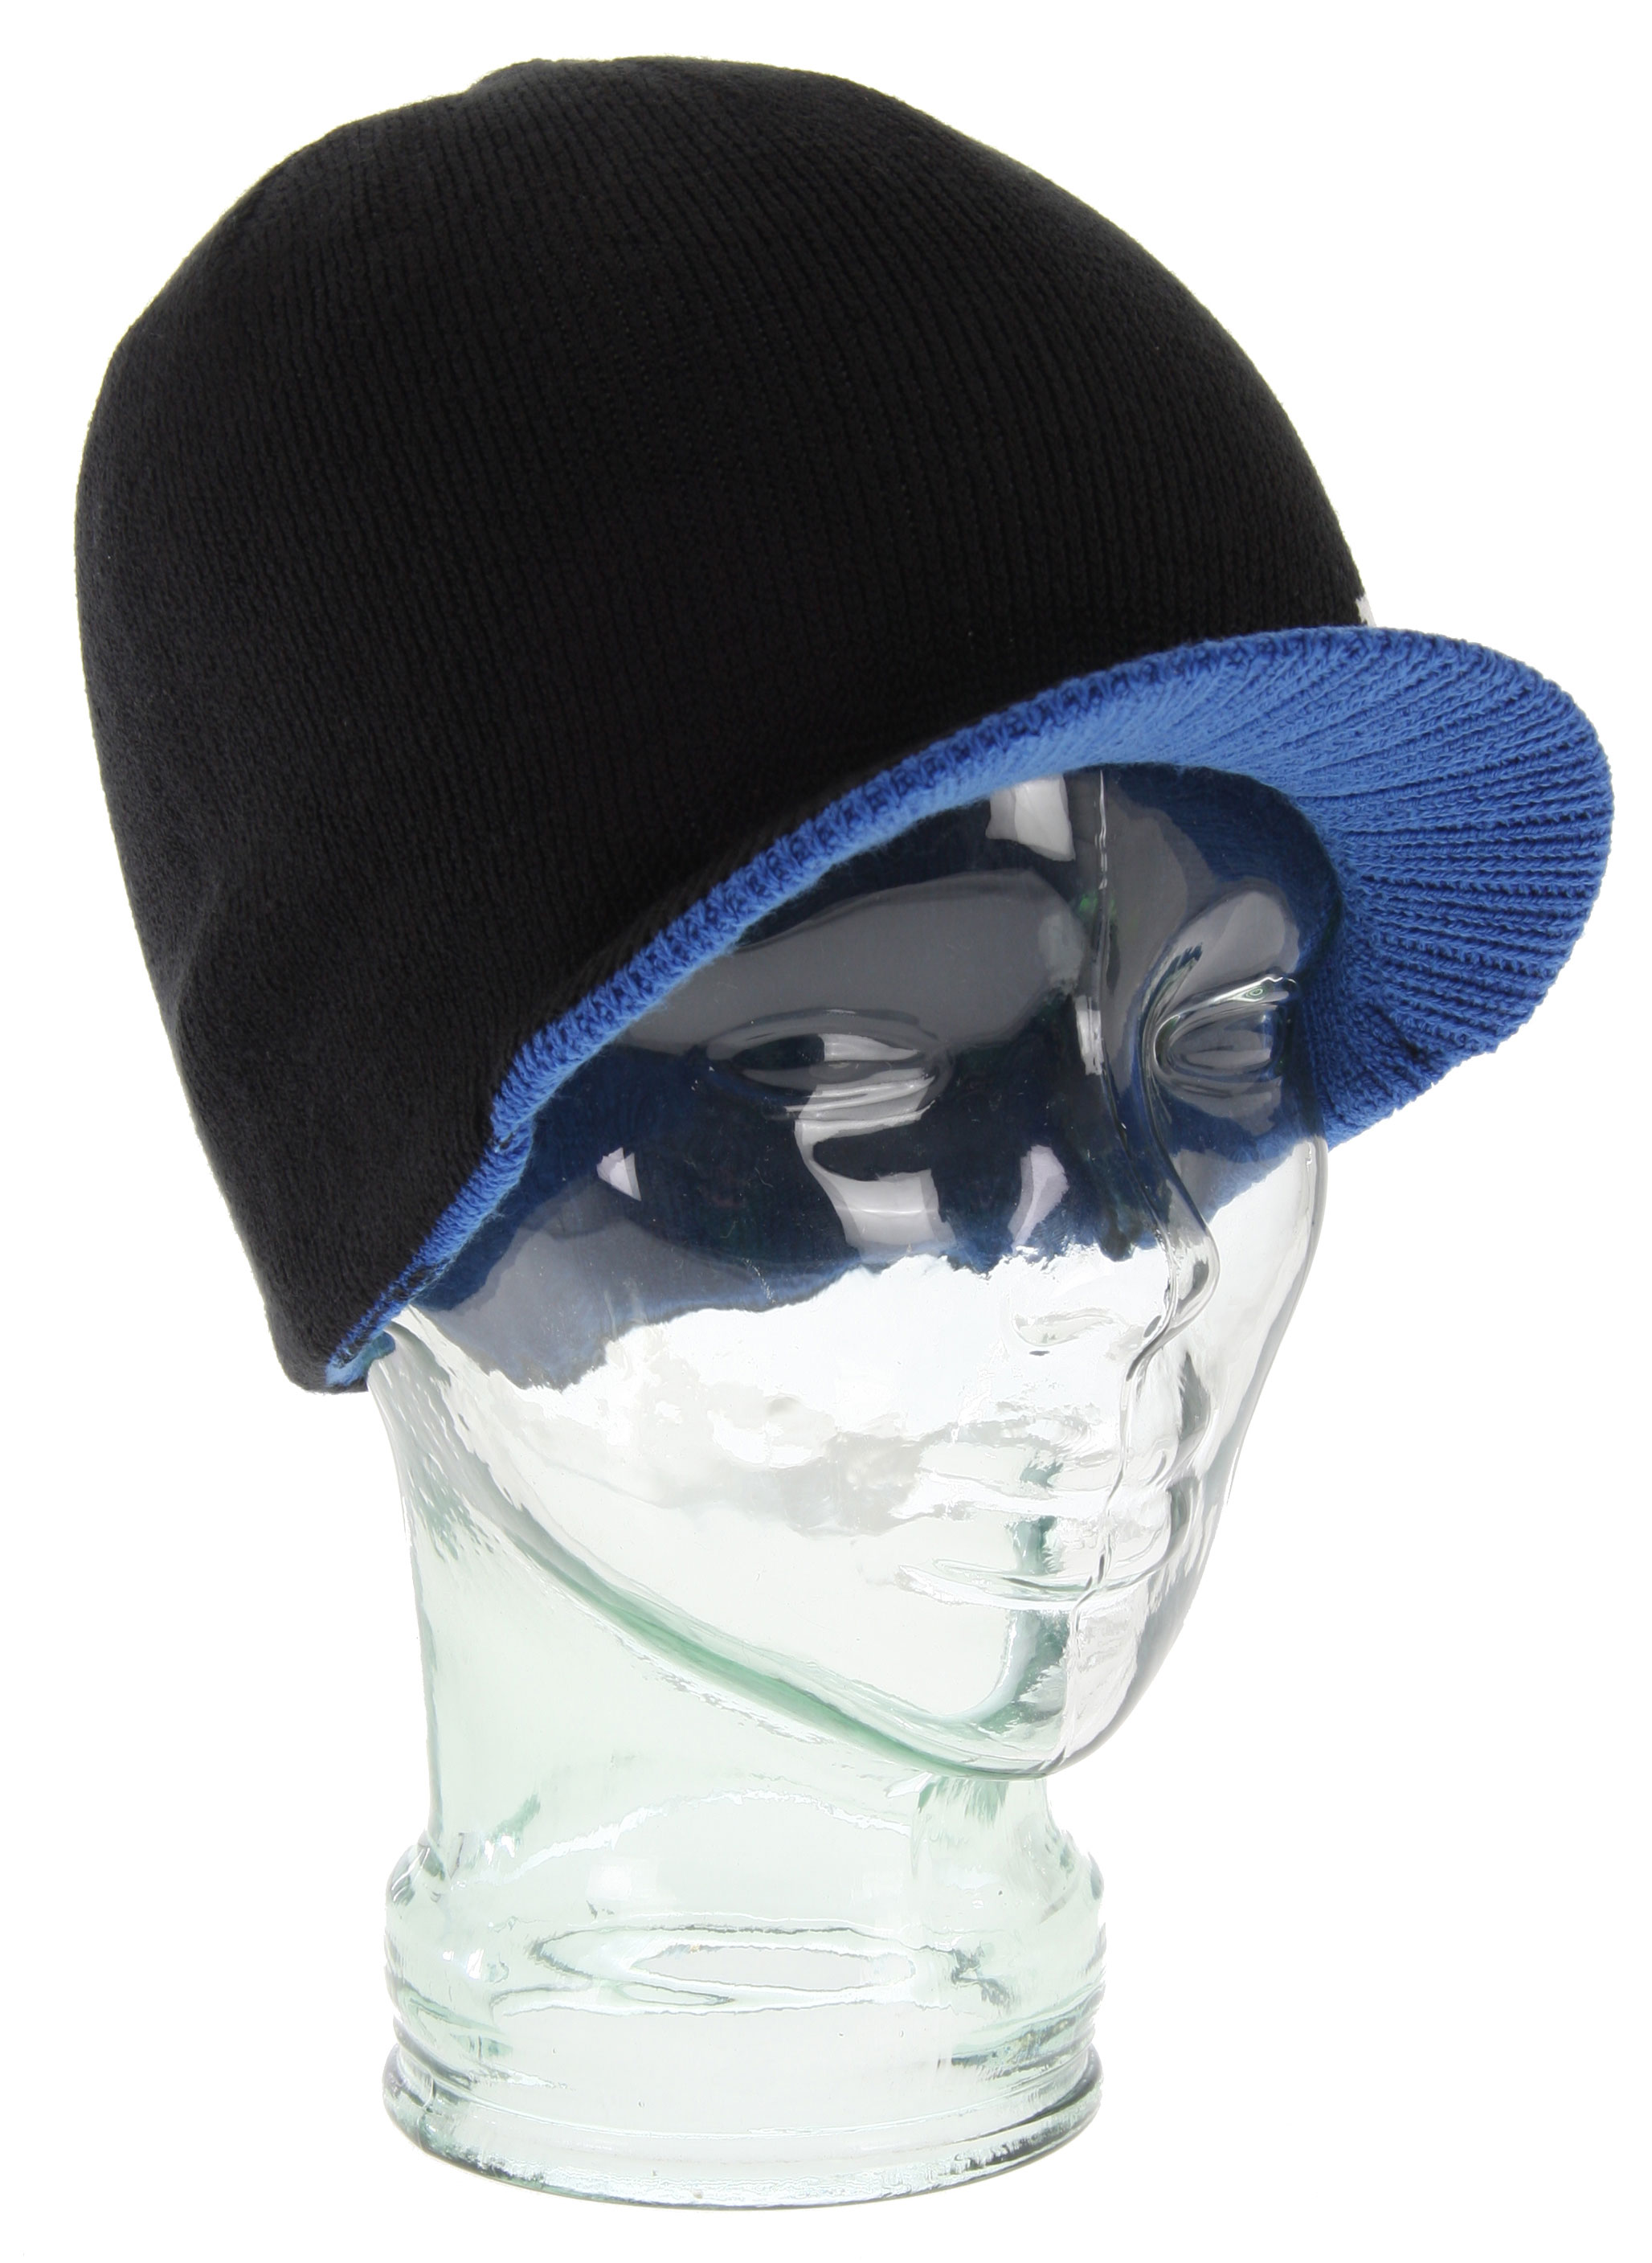 Key Features of the DC Cascata Beanie Black/Lapis: 95% acrylic/ 5% spandex 4-way stretch reversible men's standard fit visor beanie - $16.77